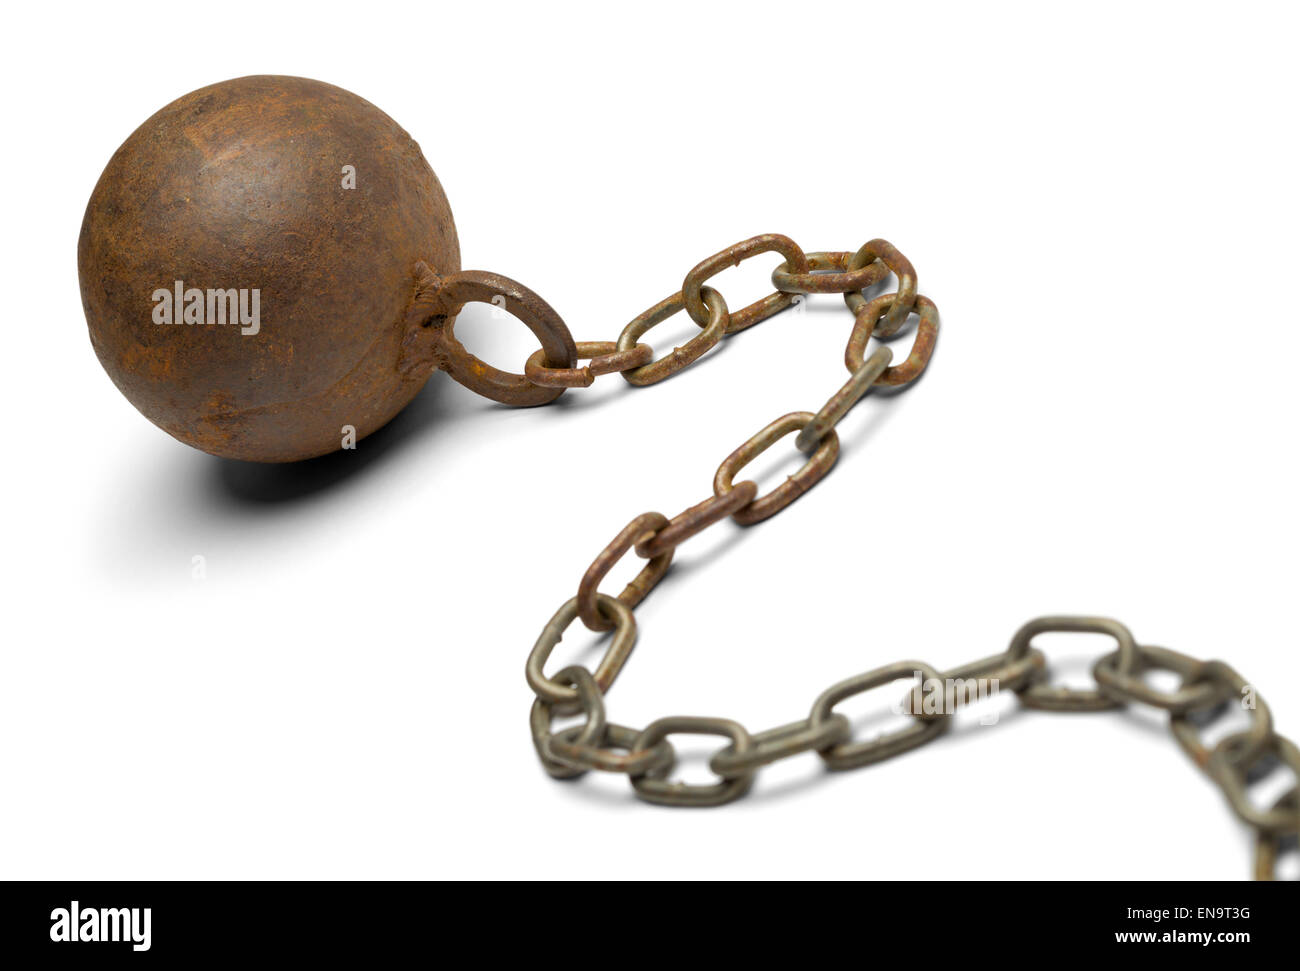 Old Rusty Ball and Chain Isolated on White Background. - Stock Image